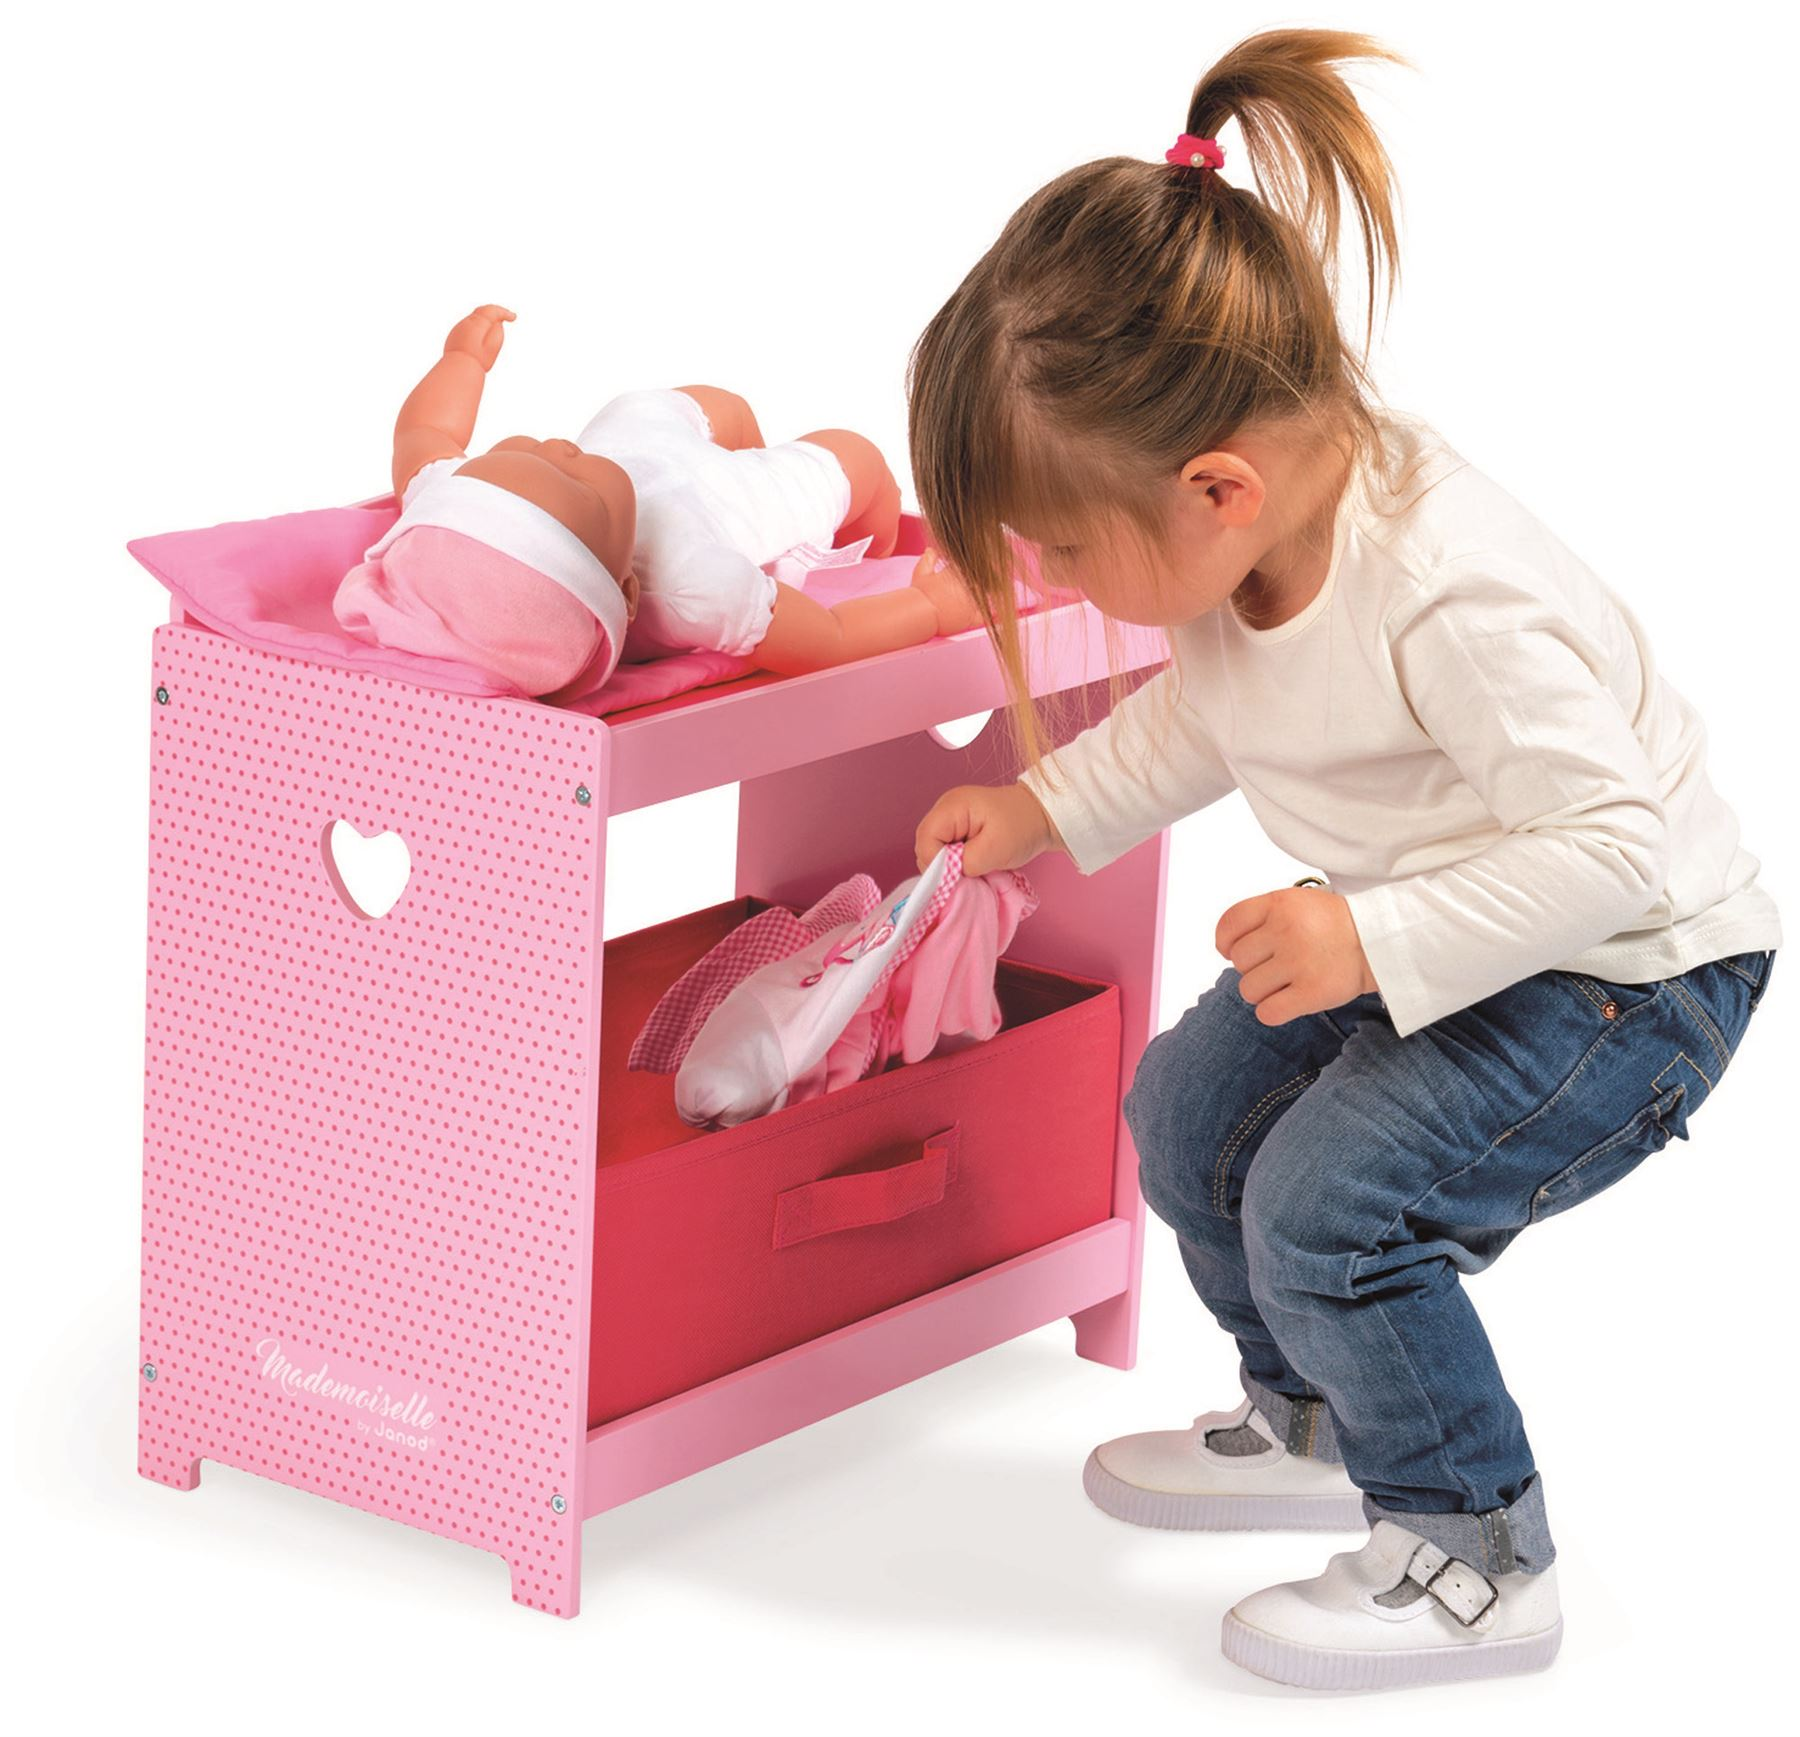 Janod MADEMOISELLE CHANGING TABLE Wooden Toys Games ...